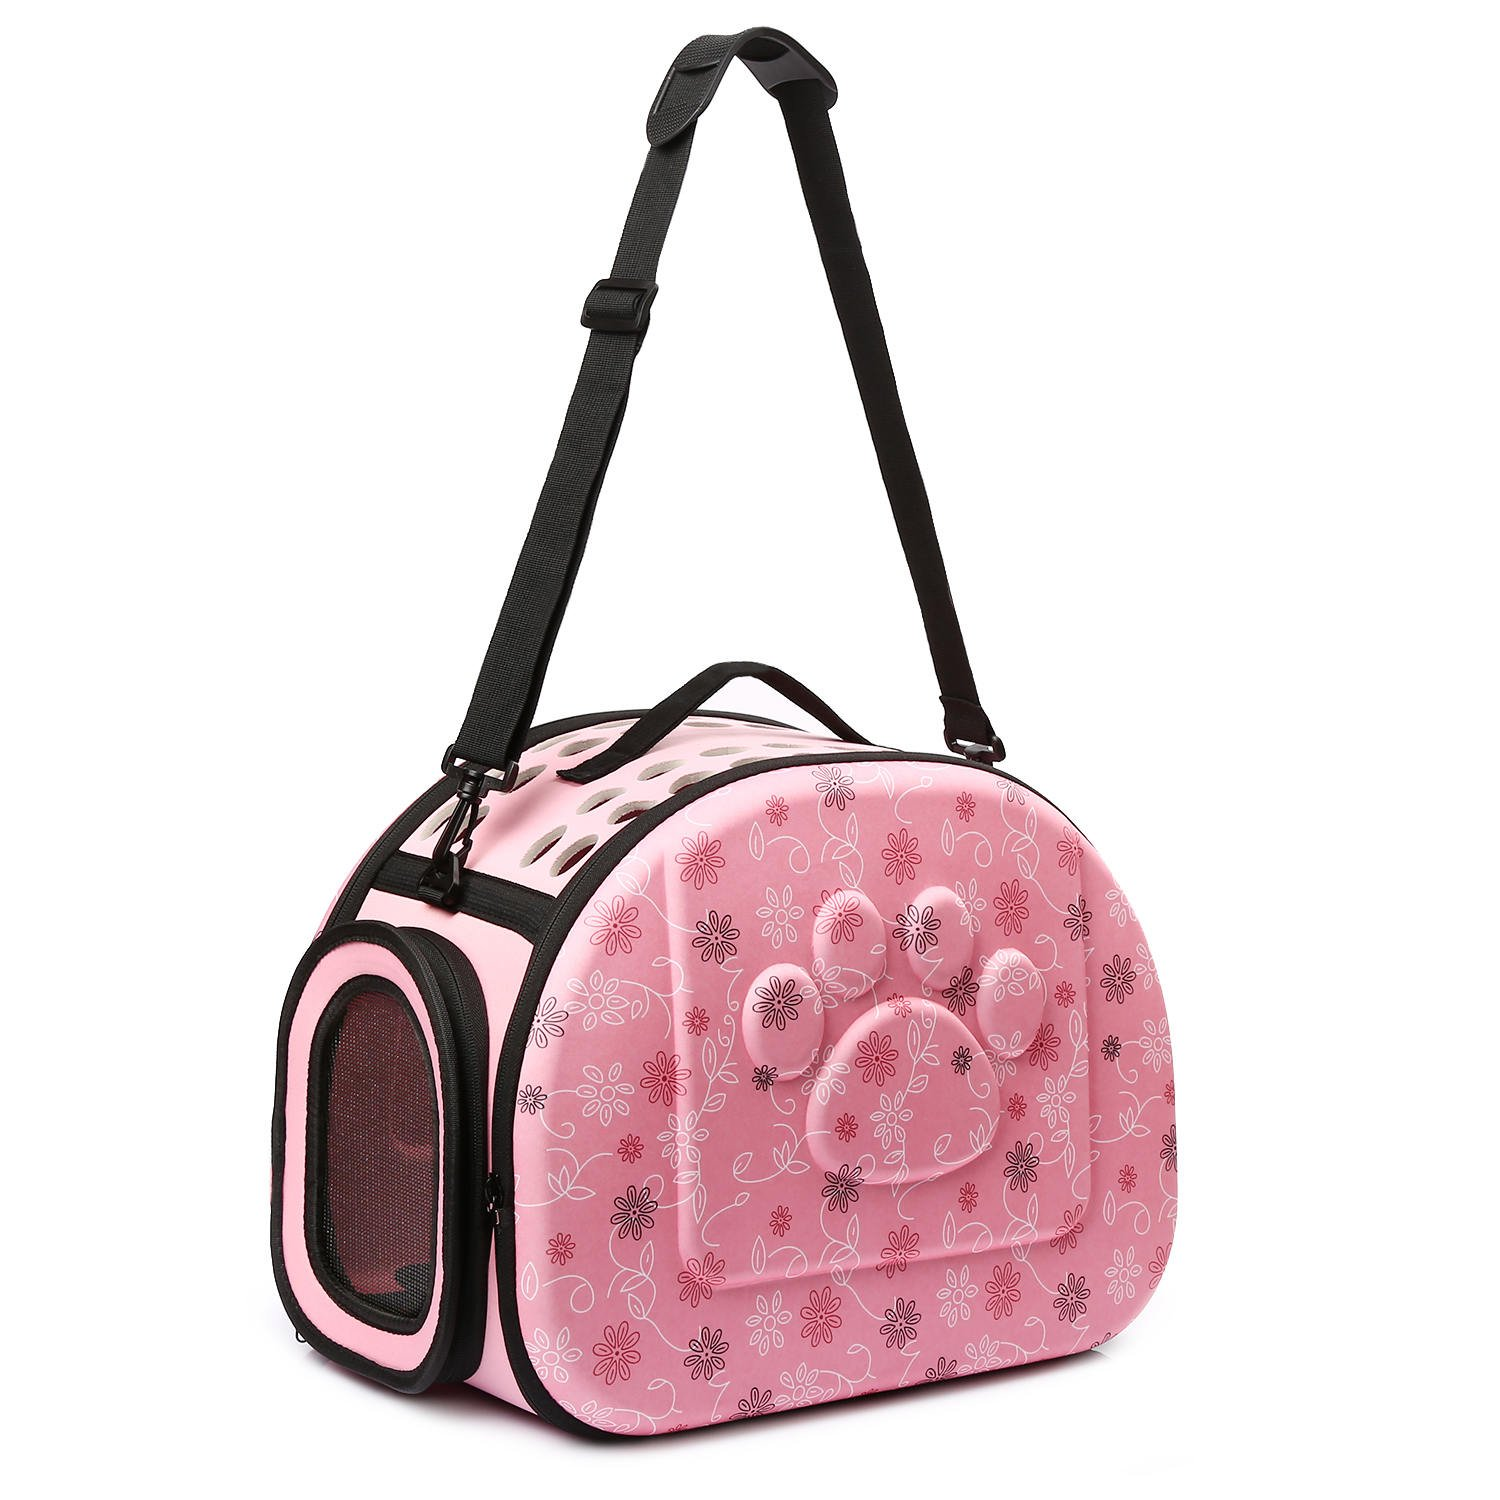 CORALTEA EVA Cute Portable Collapsible for Pets of Medium Size Cats & Dogs Airline Approved  Outdoor Under Seat Travel Pet Carrier Soft Sided Puppy Bag (pink) by Coraltea